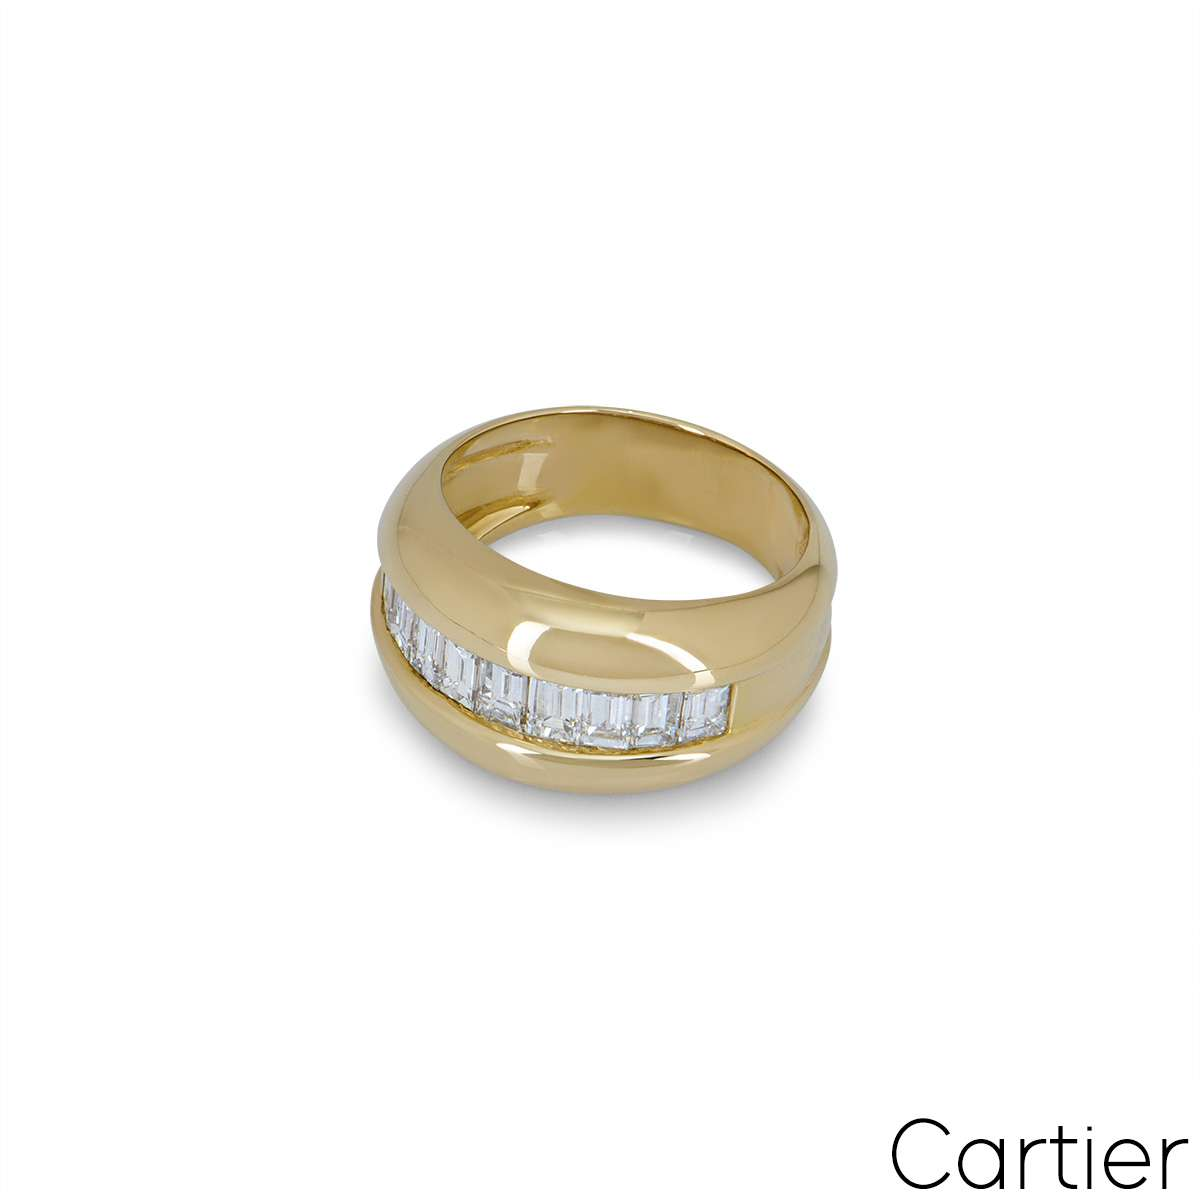 Cartier Yellow Gold Bombe Diamond Ring